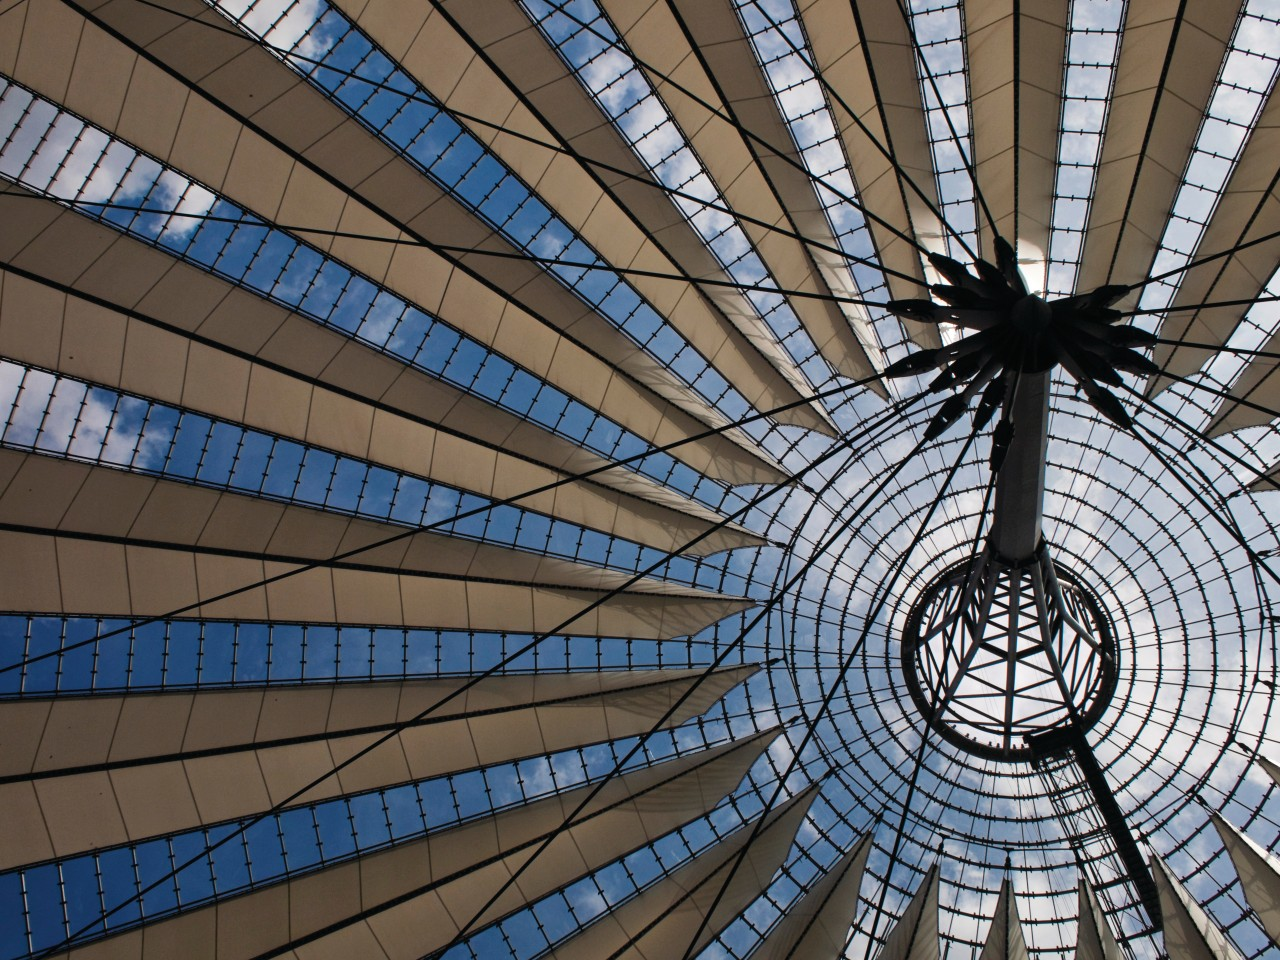 Sony Center and its gigantic futuristic dome on Potsdamer Platz